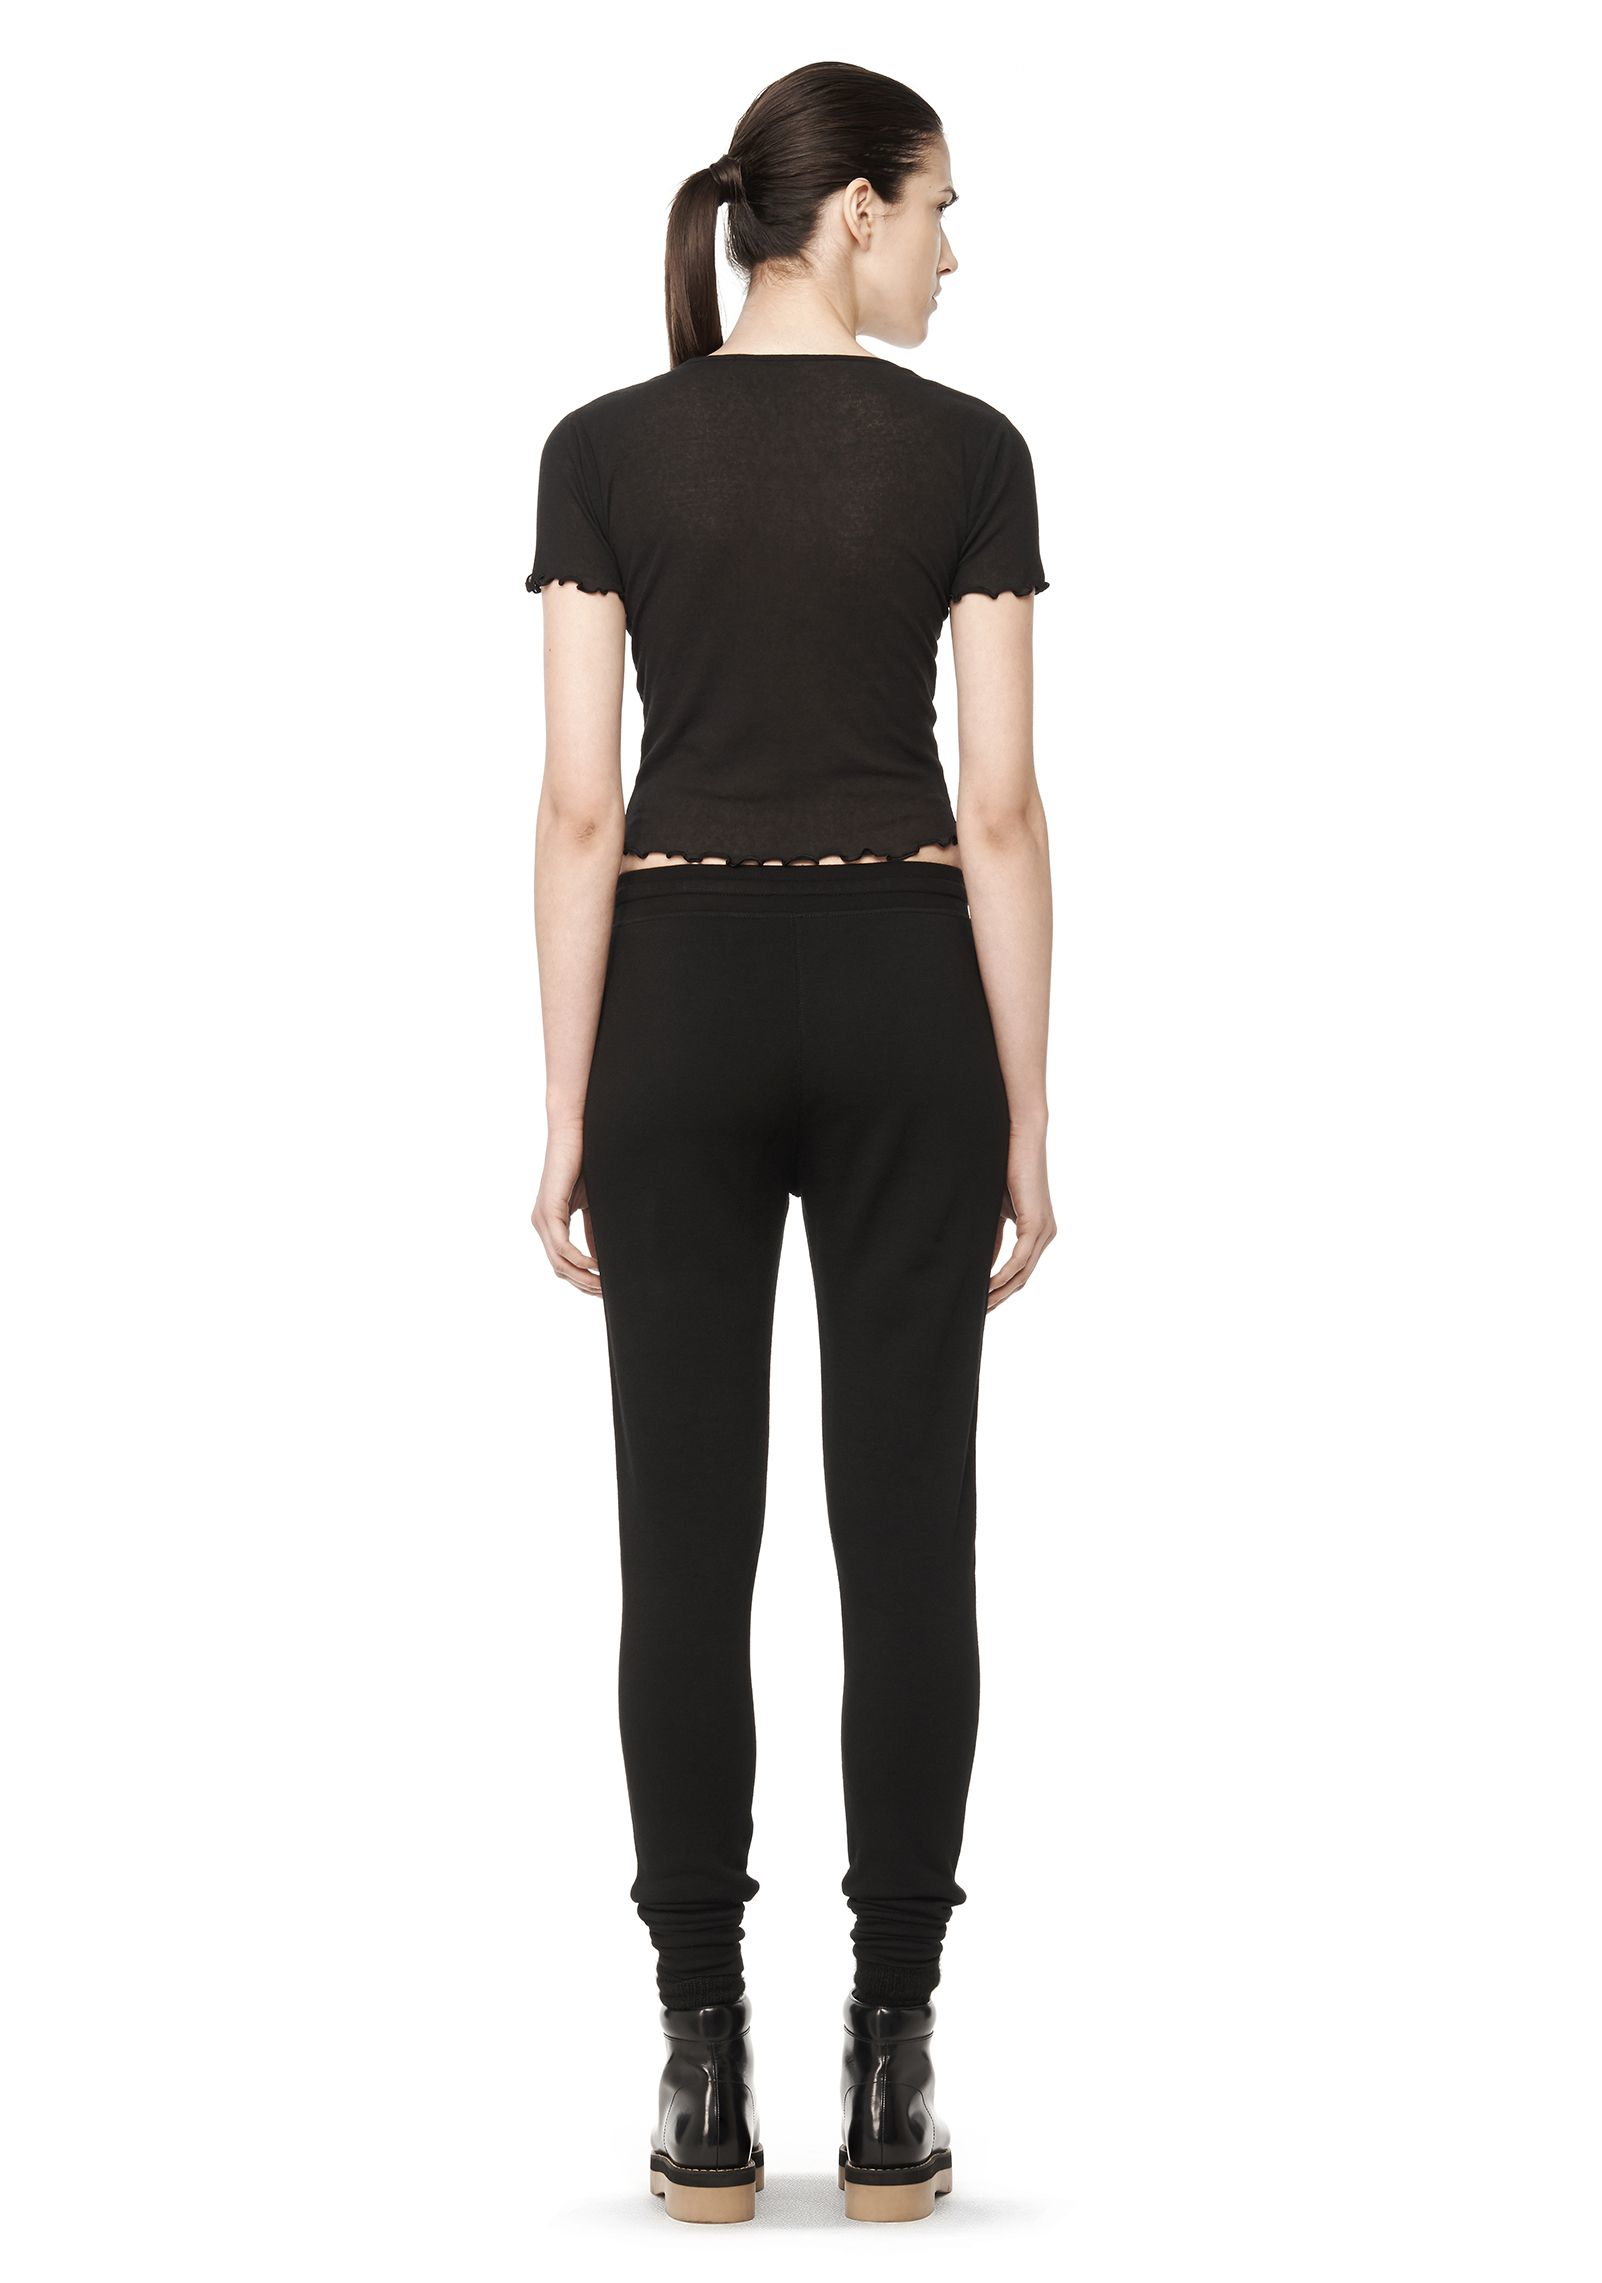 T by alexander wang t shirt in black lyst for Alexander wang t shirt women